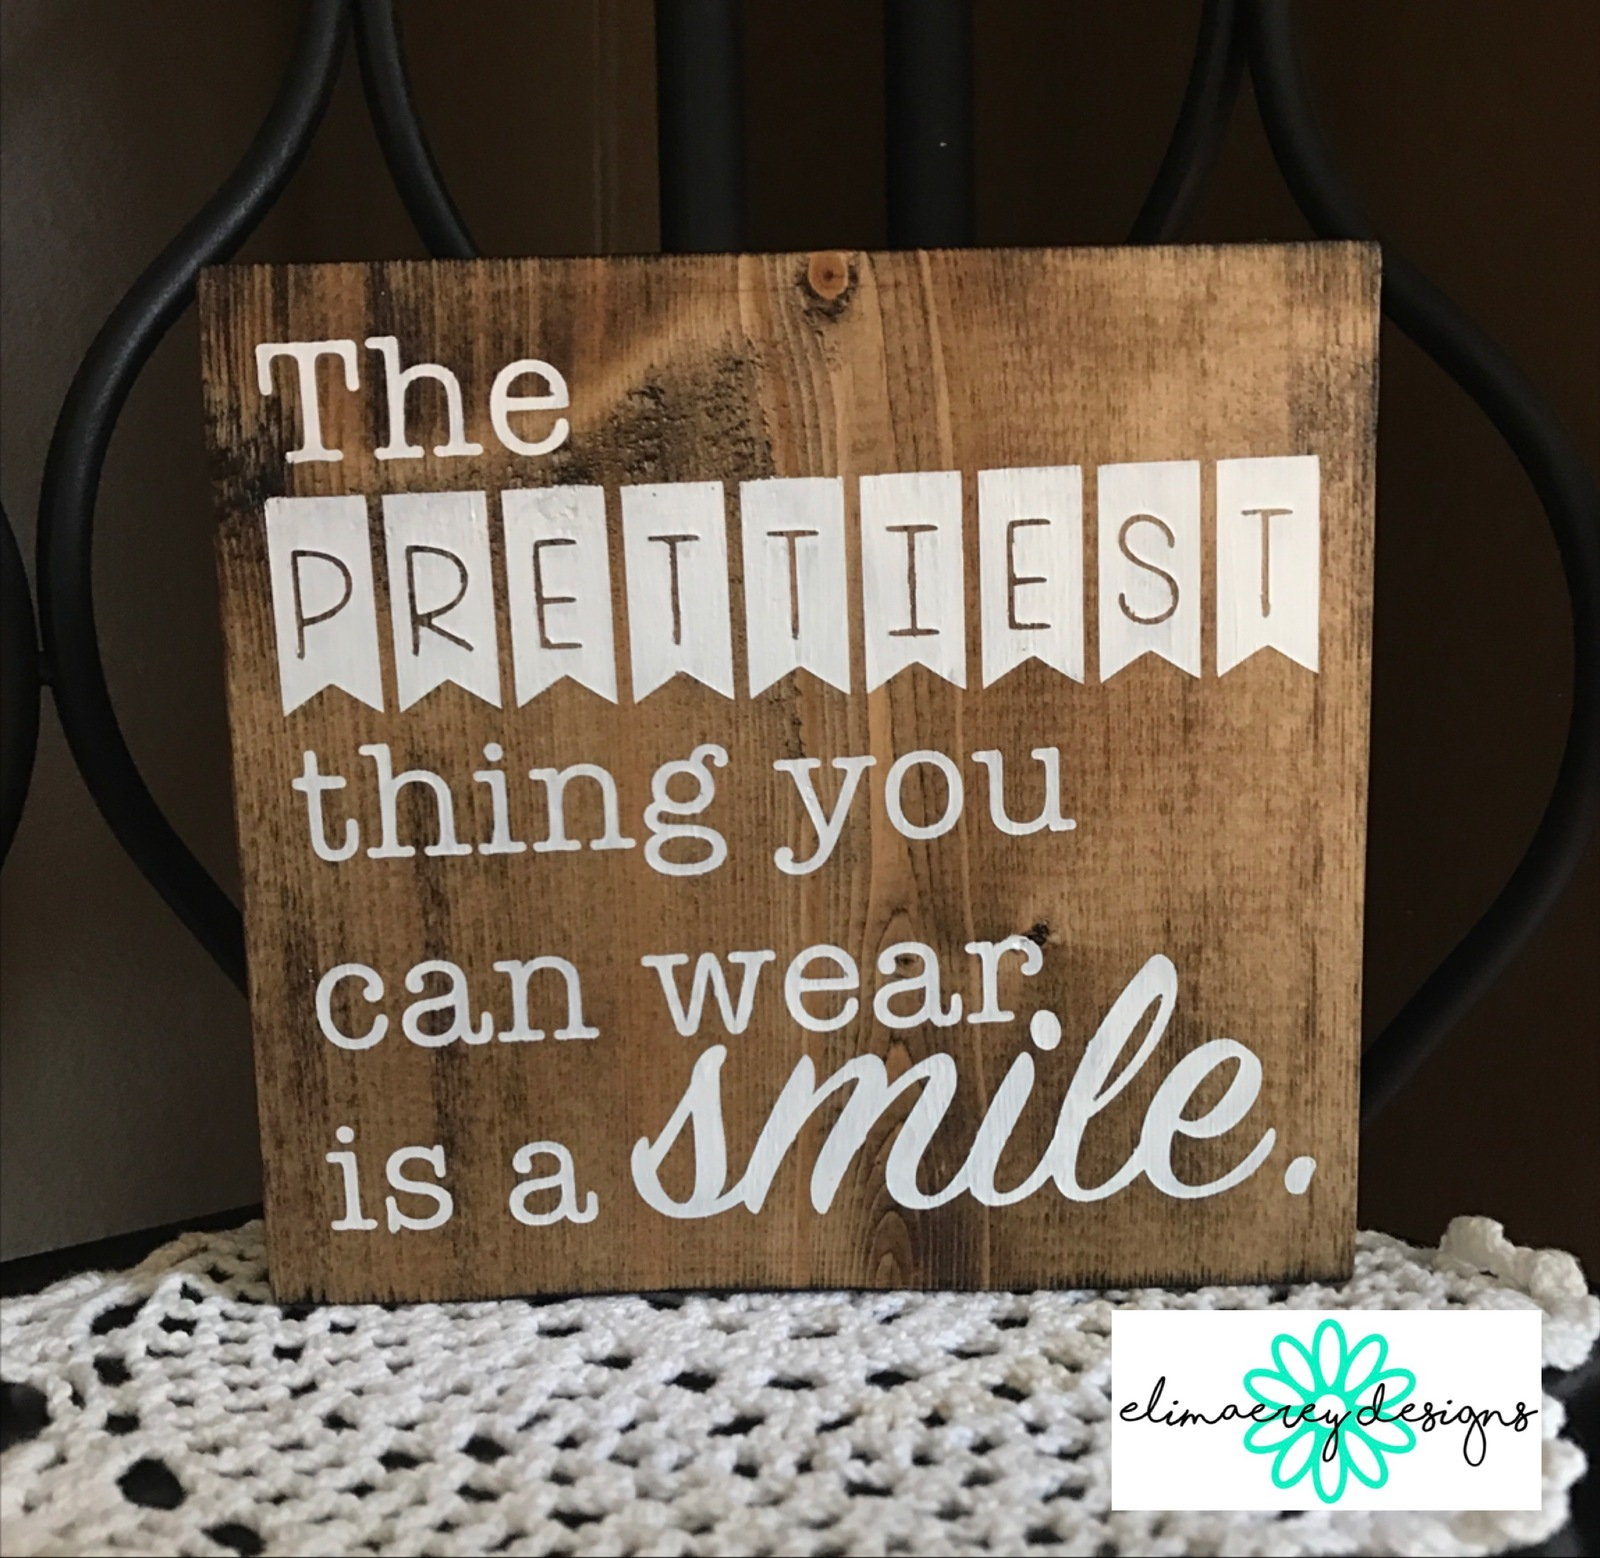 wear a smile handmade wood sign rustic home decor wall hanging